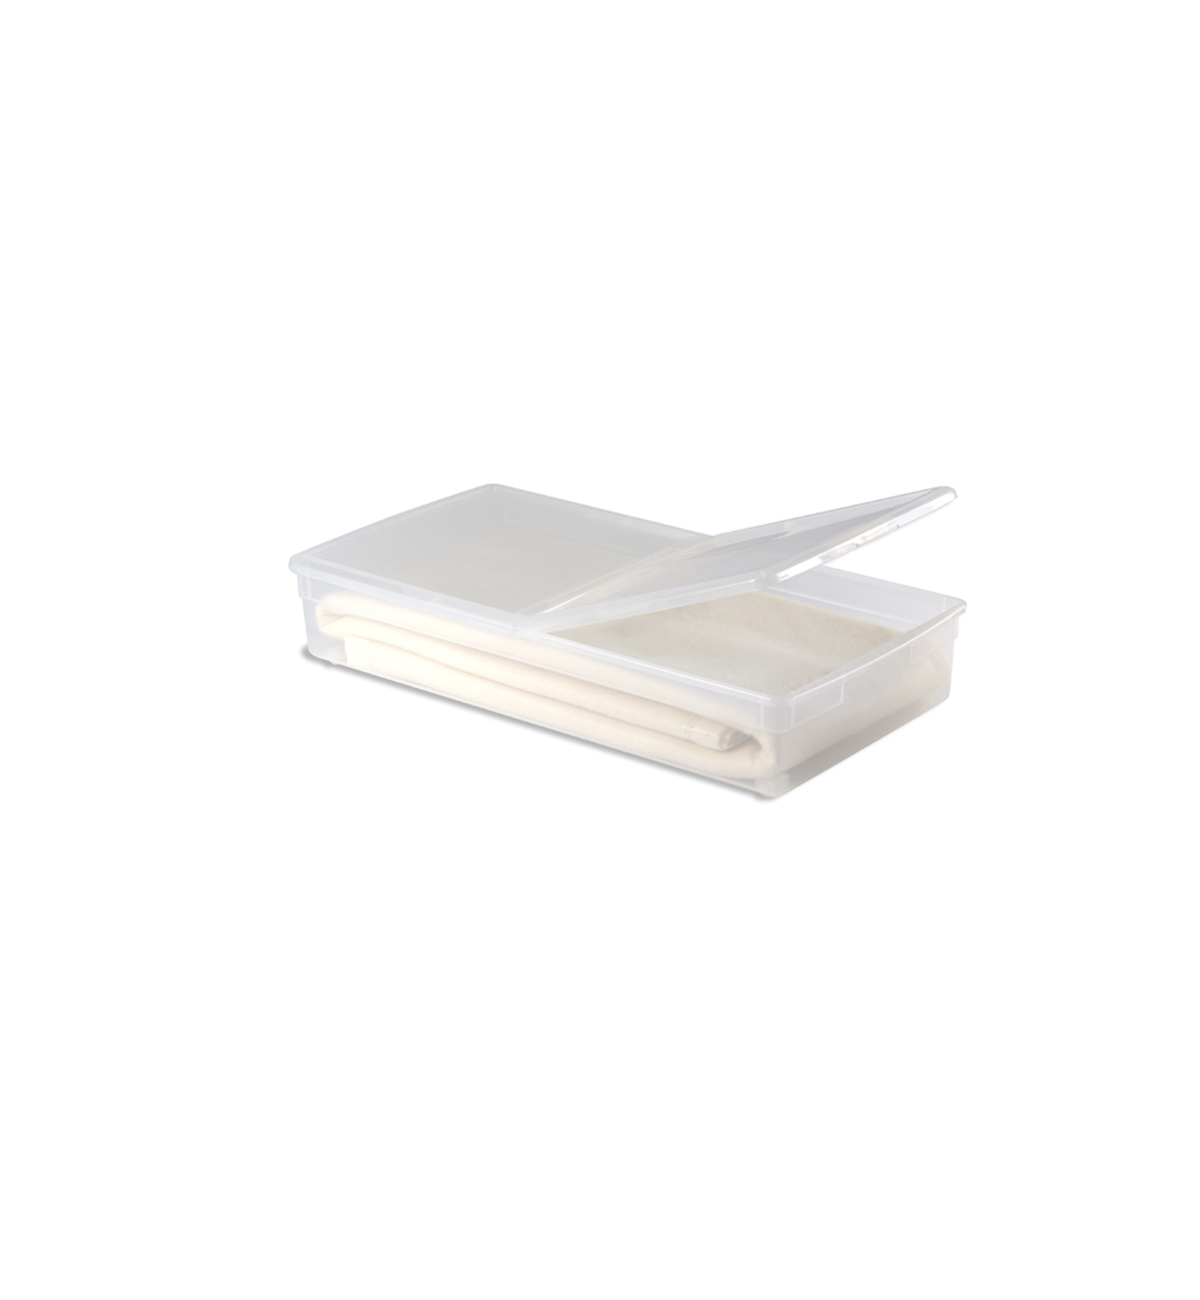 Large Underbed Storage Bin  sc 1 st  Real Simple & The Best Under-Bed Storage Solutions to Hide the Clutter | Real Simple